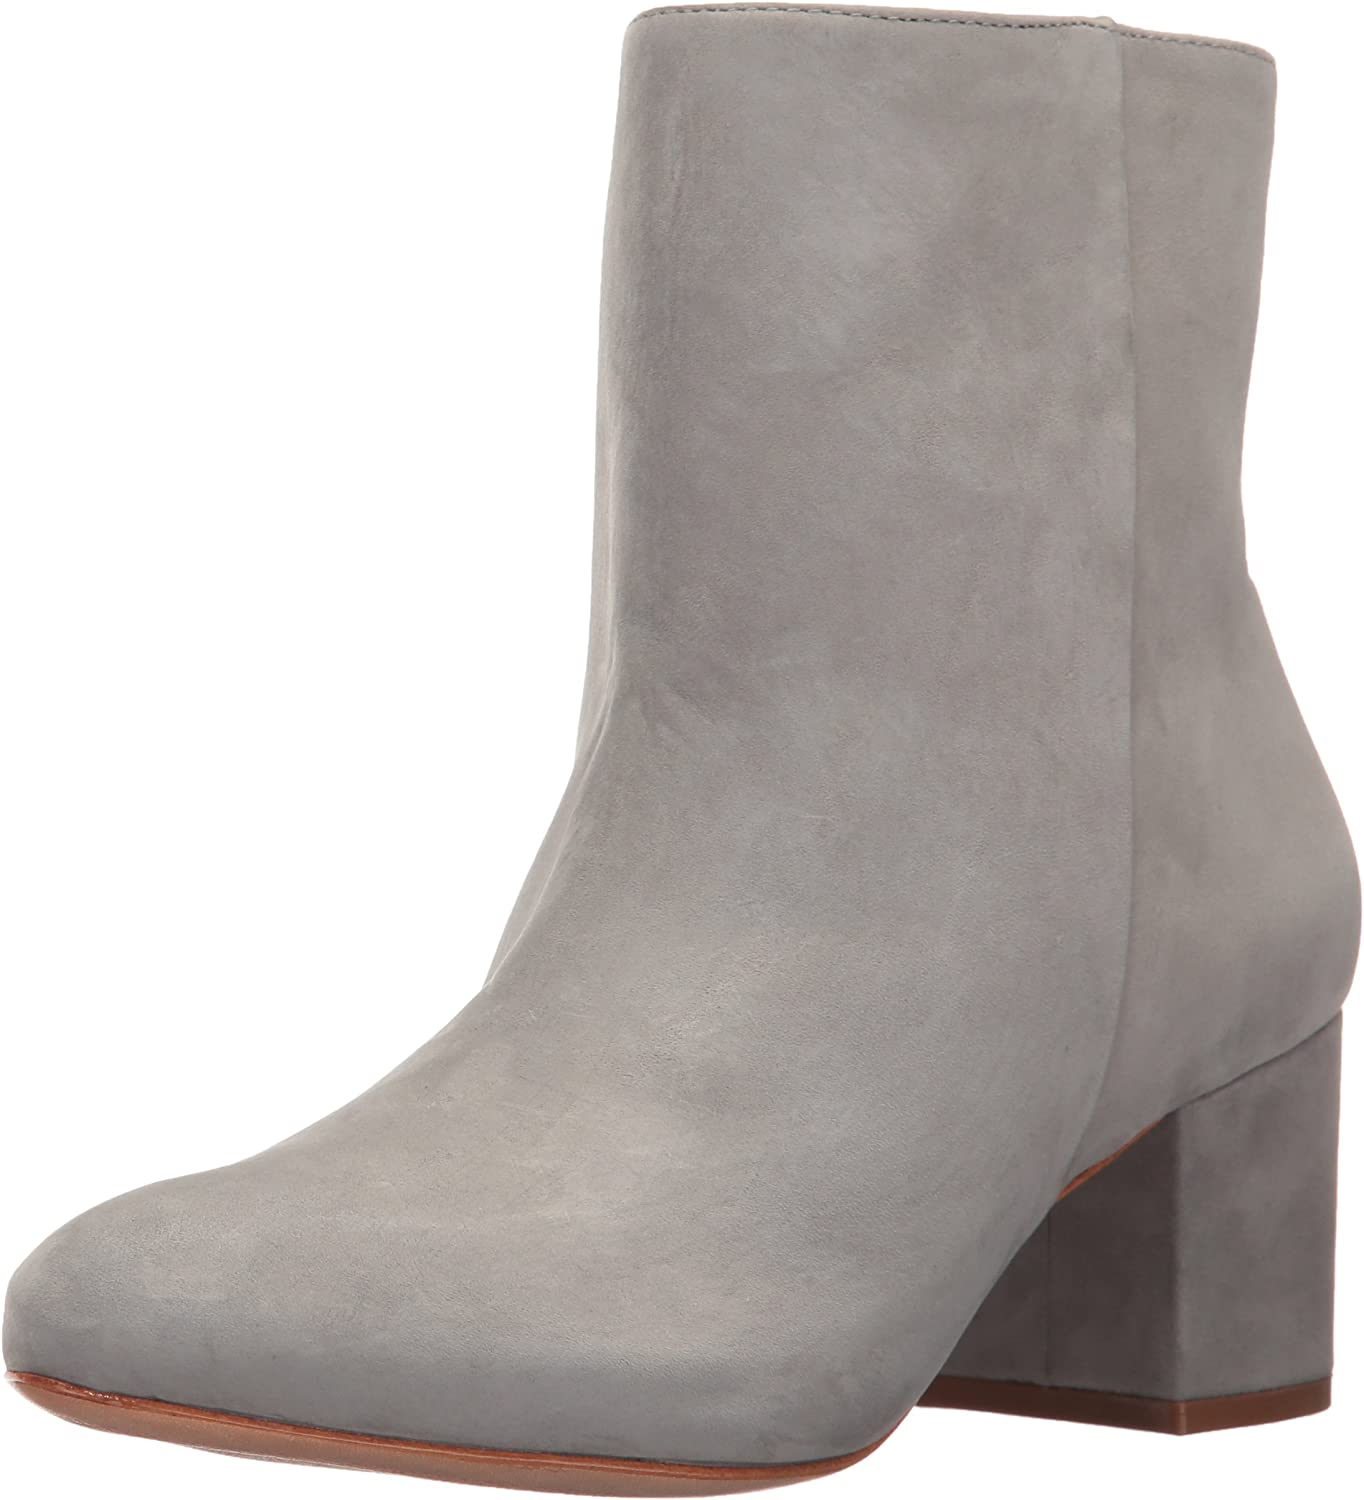 Schutz Womens Lupe Ankle Boot